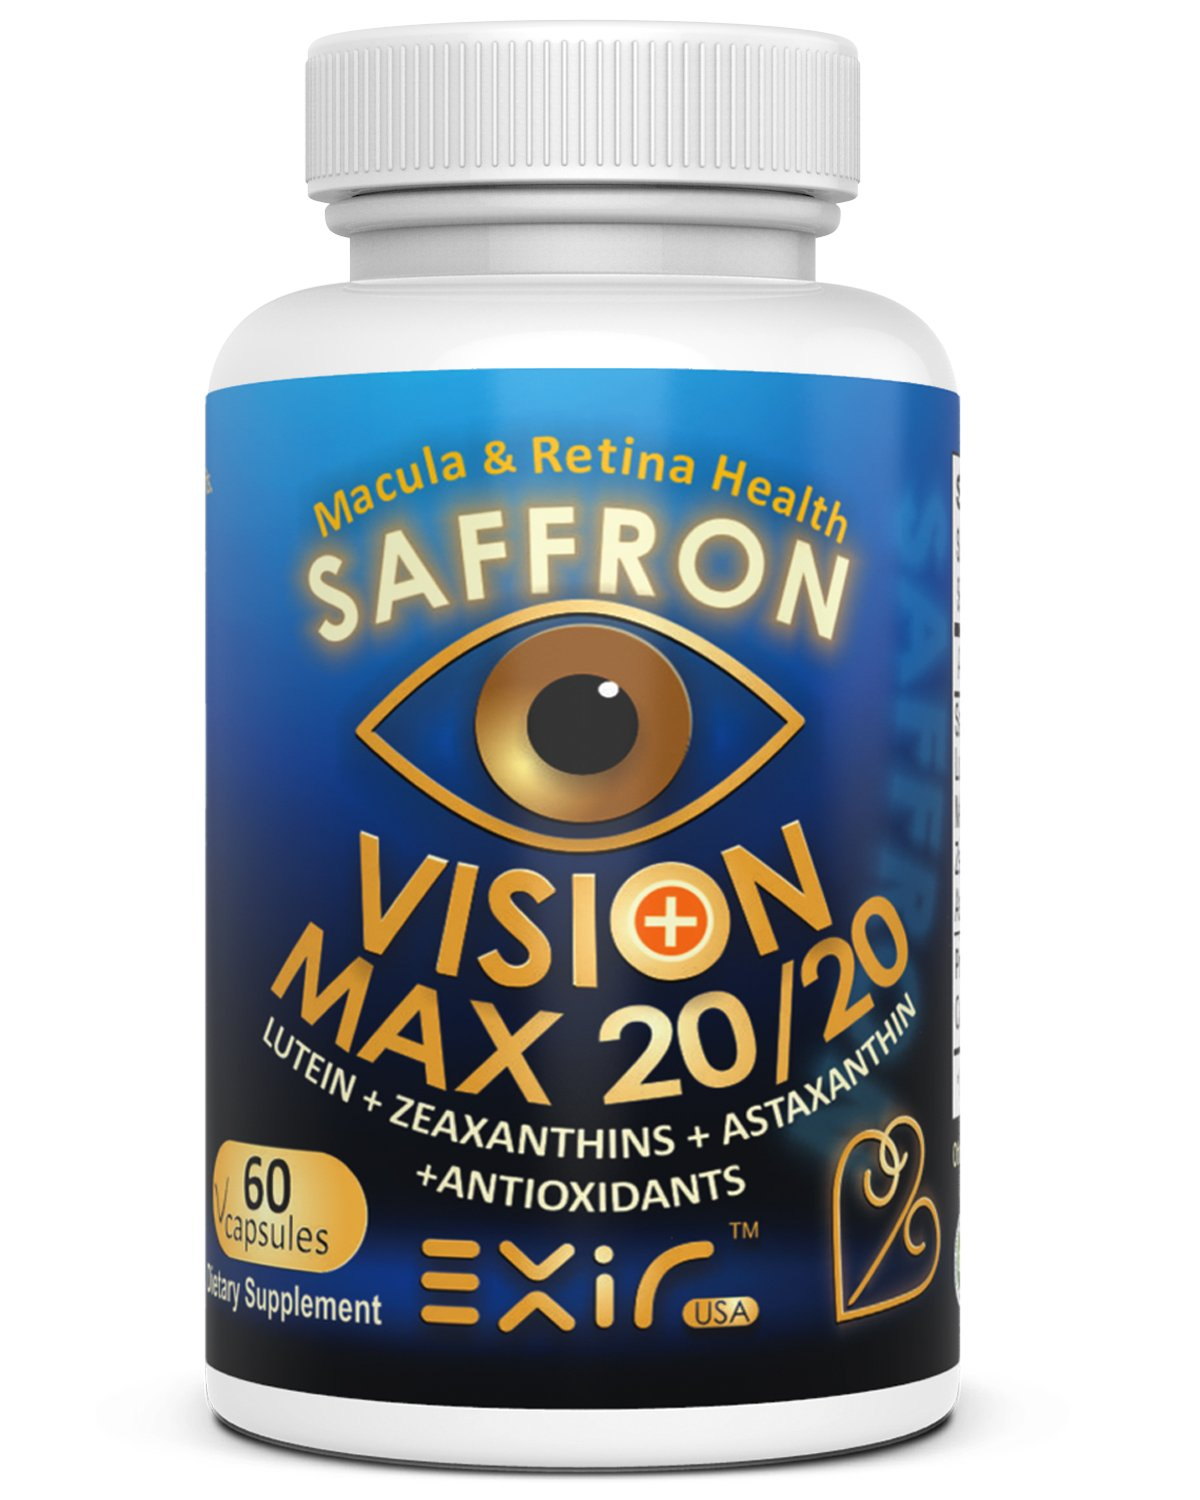 Vision Max 20/20 For Vision & Macula Health & Overall Wellness | High Potency Carotenoids Saffron, Lutein Meso-Zeaxanthin Zeaxanthins Astaxanthin Proanthocyanidins Curcuminoids 60 Capsules